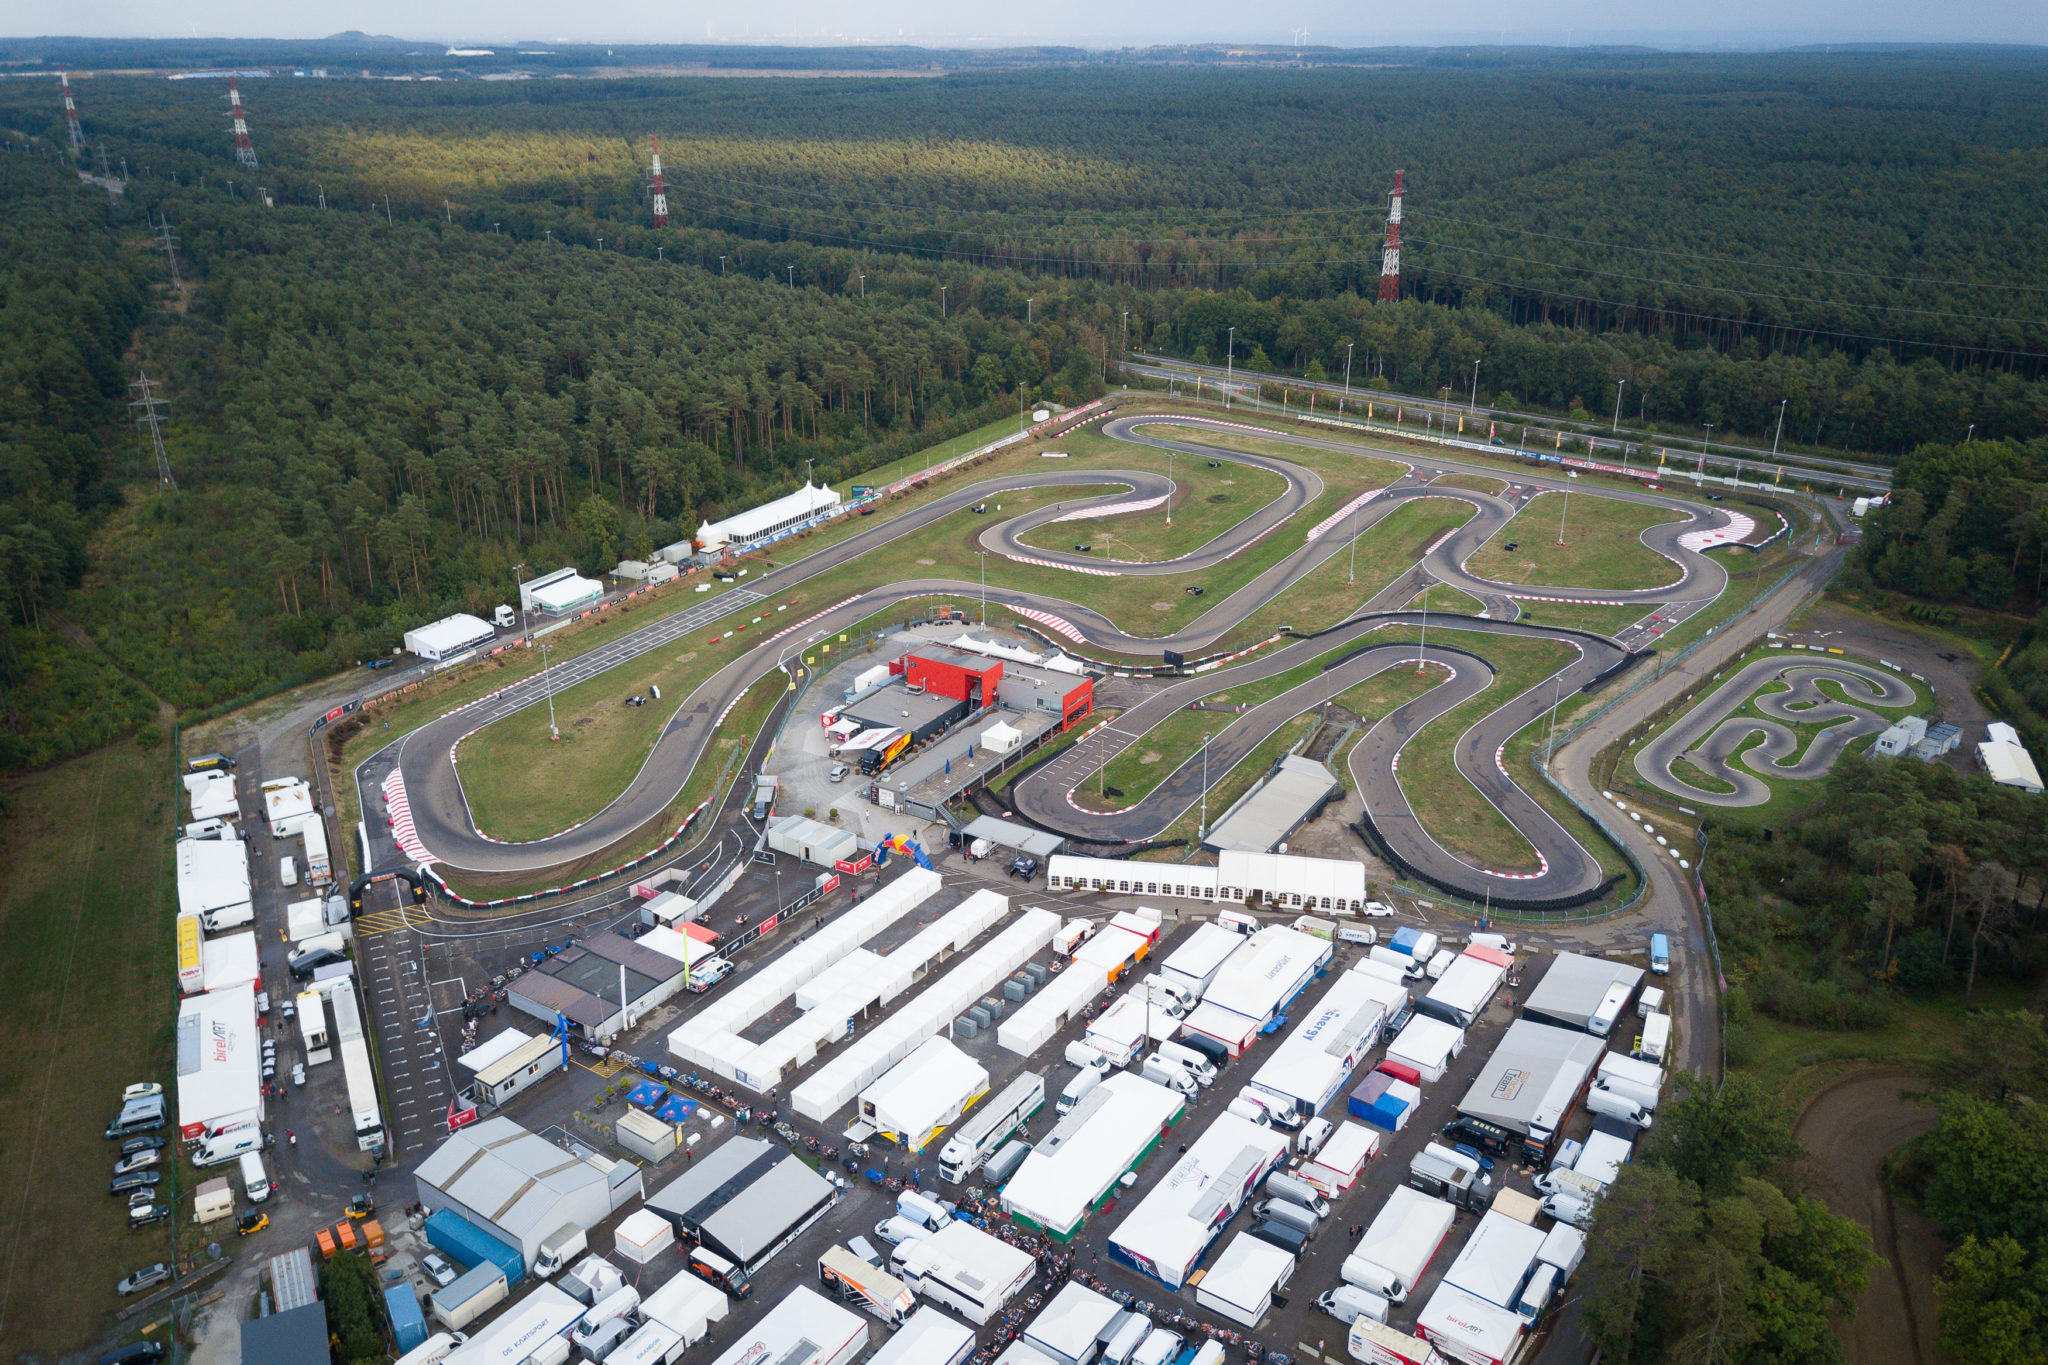 European karting tracks reopen doors but only for free practice